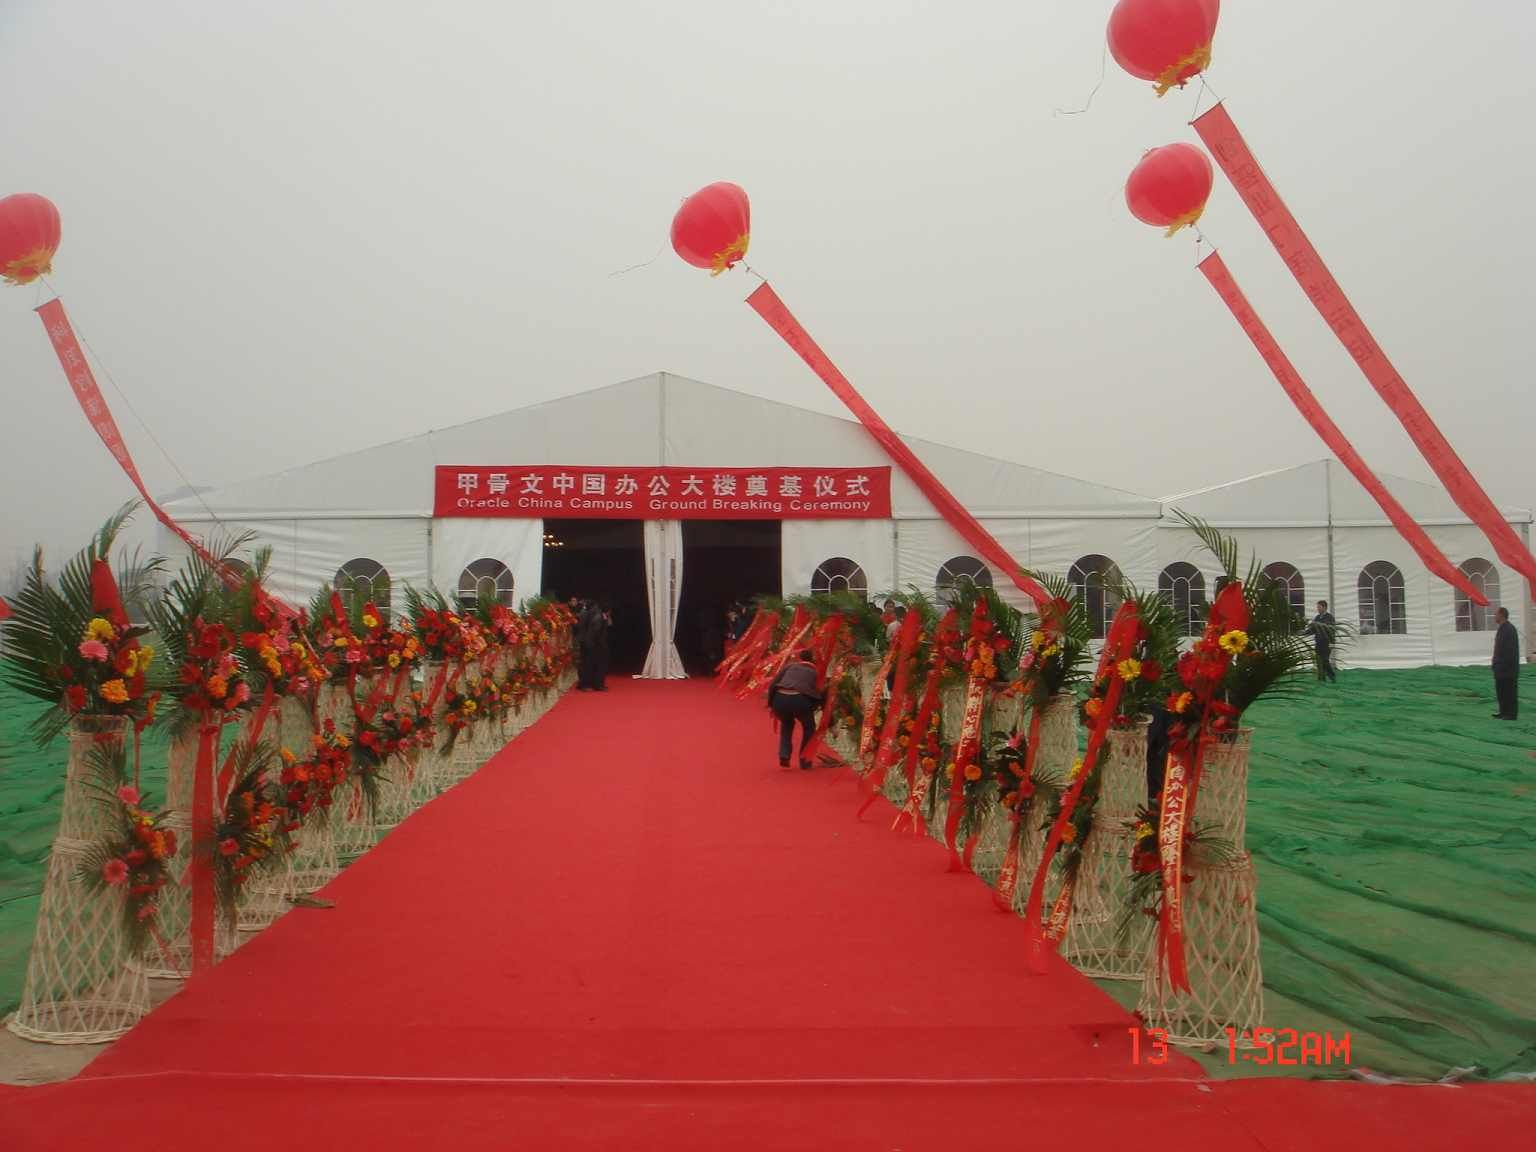 ceremony tent - company anniversary - red carpet & ceremony tent - company anniversary - red carpet | Party Tent ...